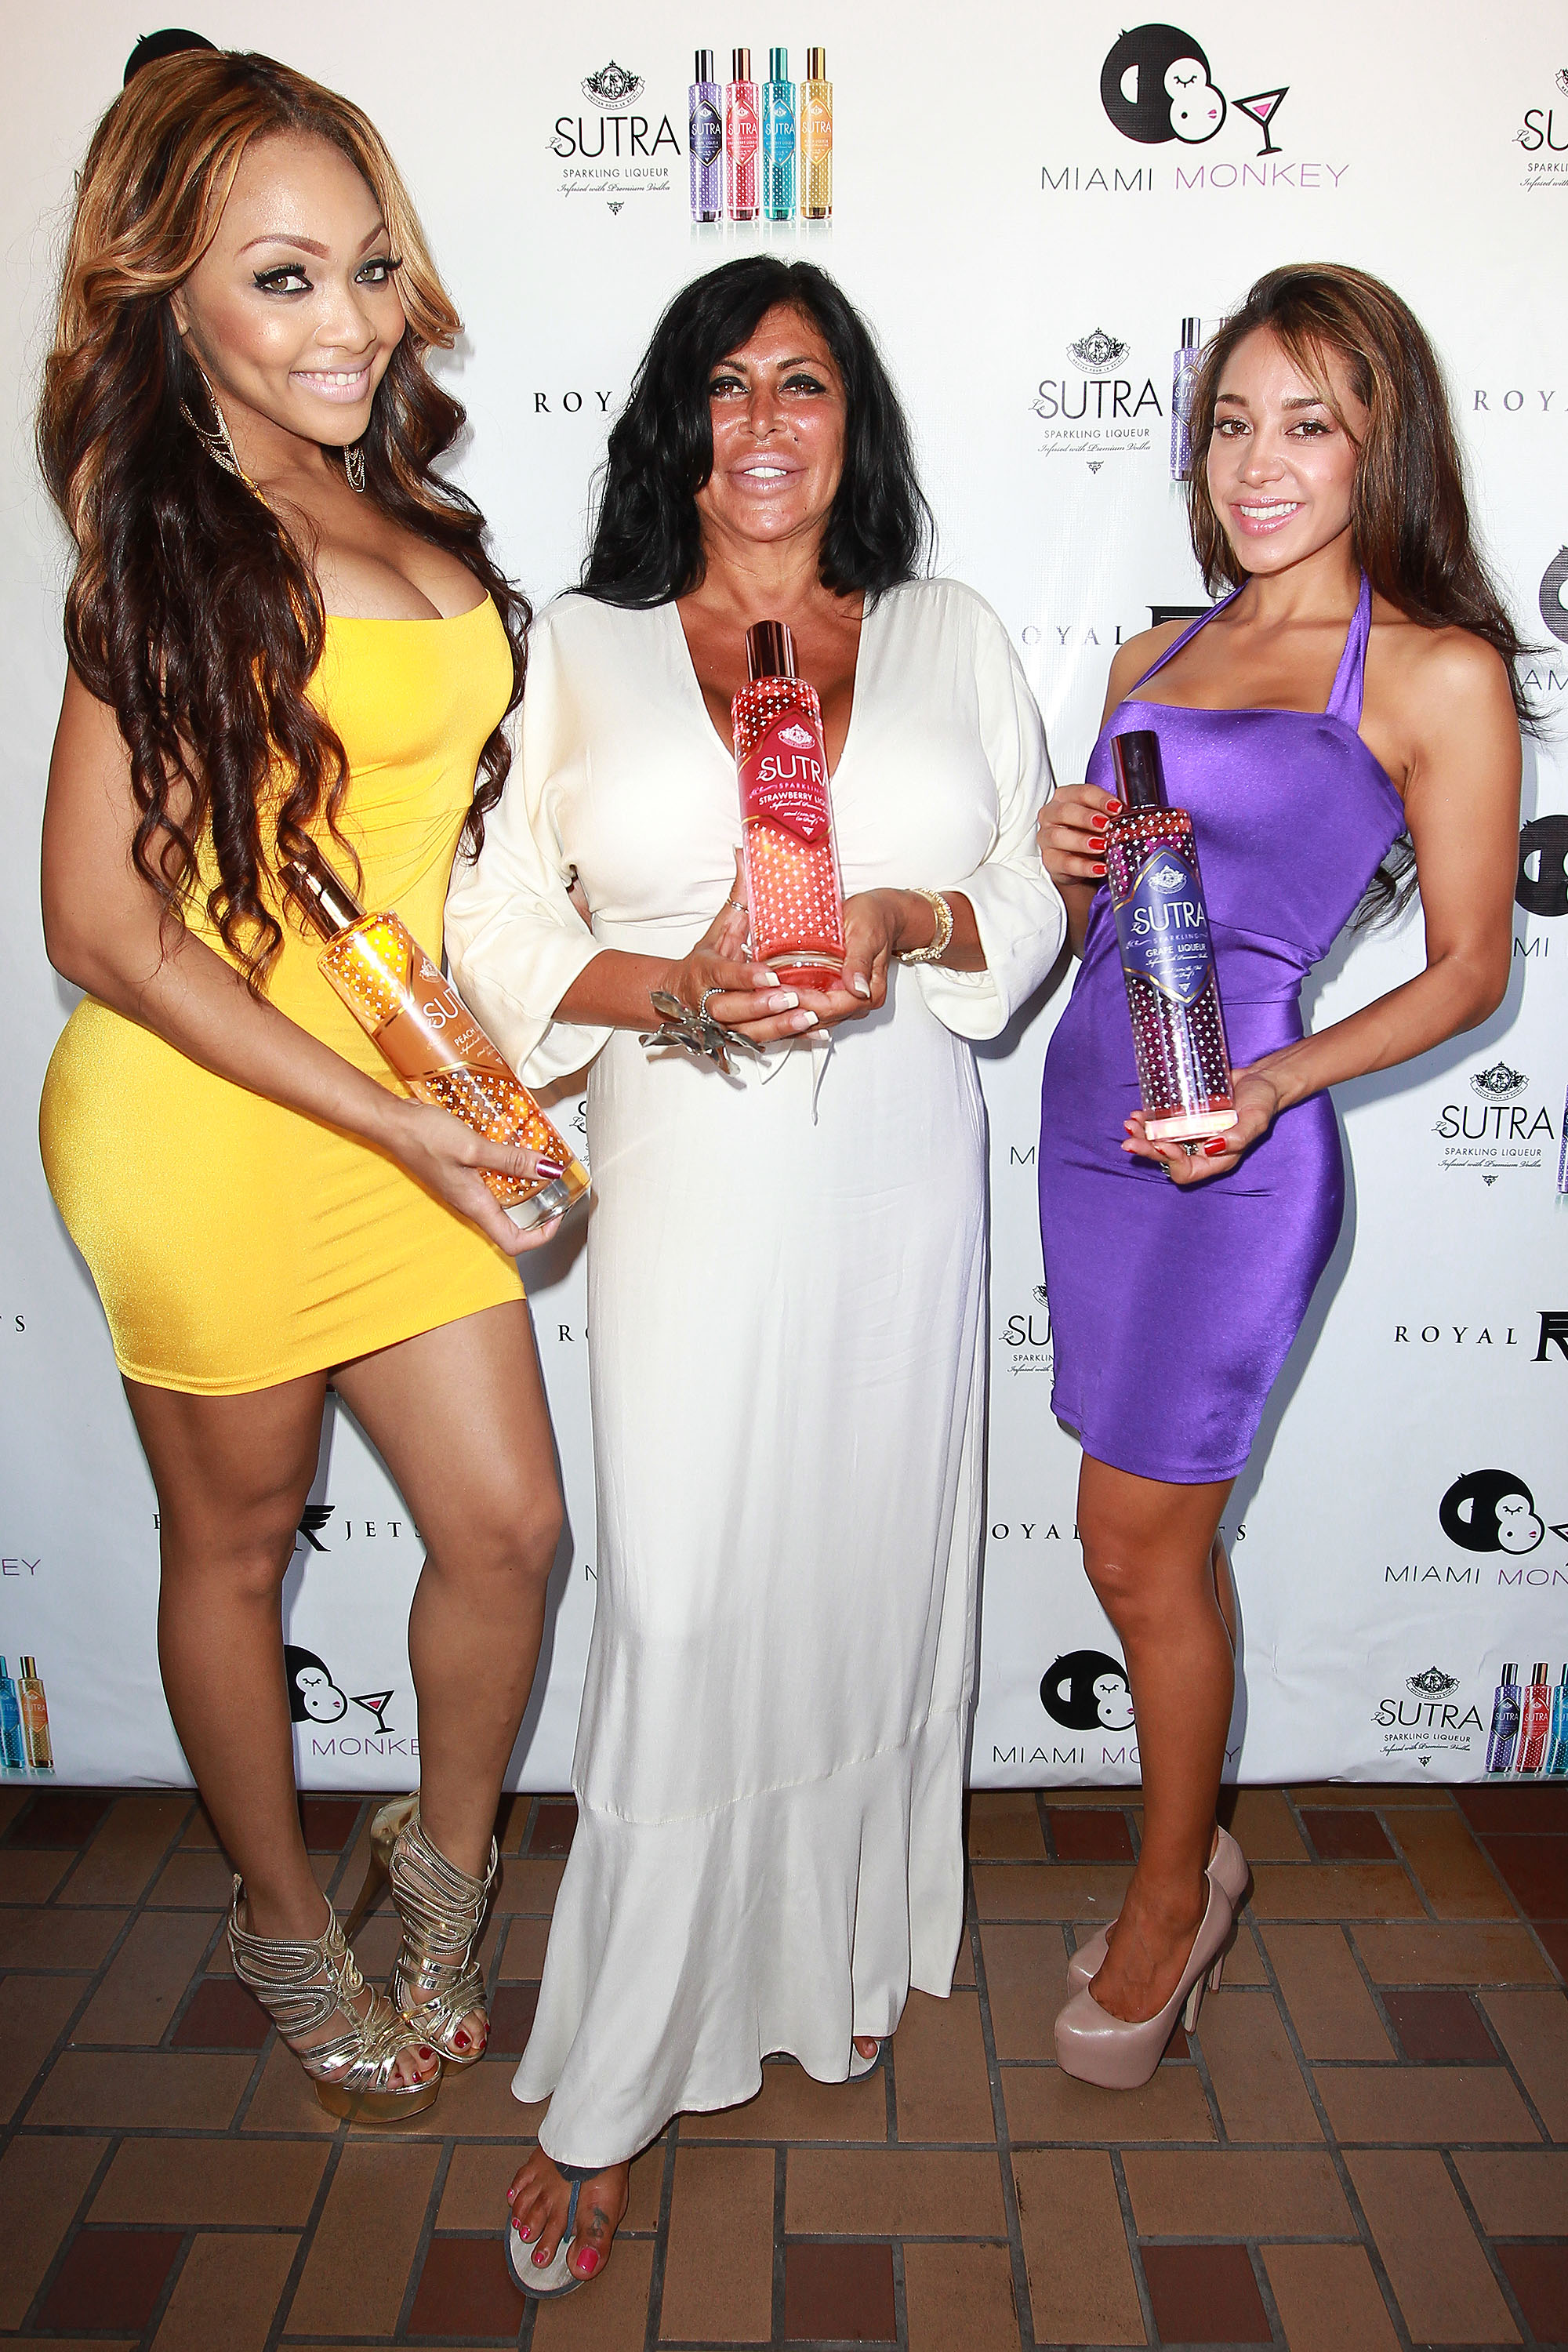 Big Ang with the leSUTRA Girls